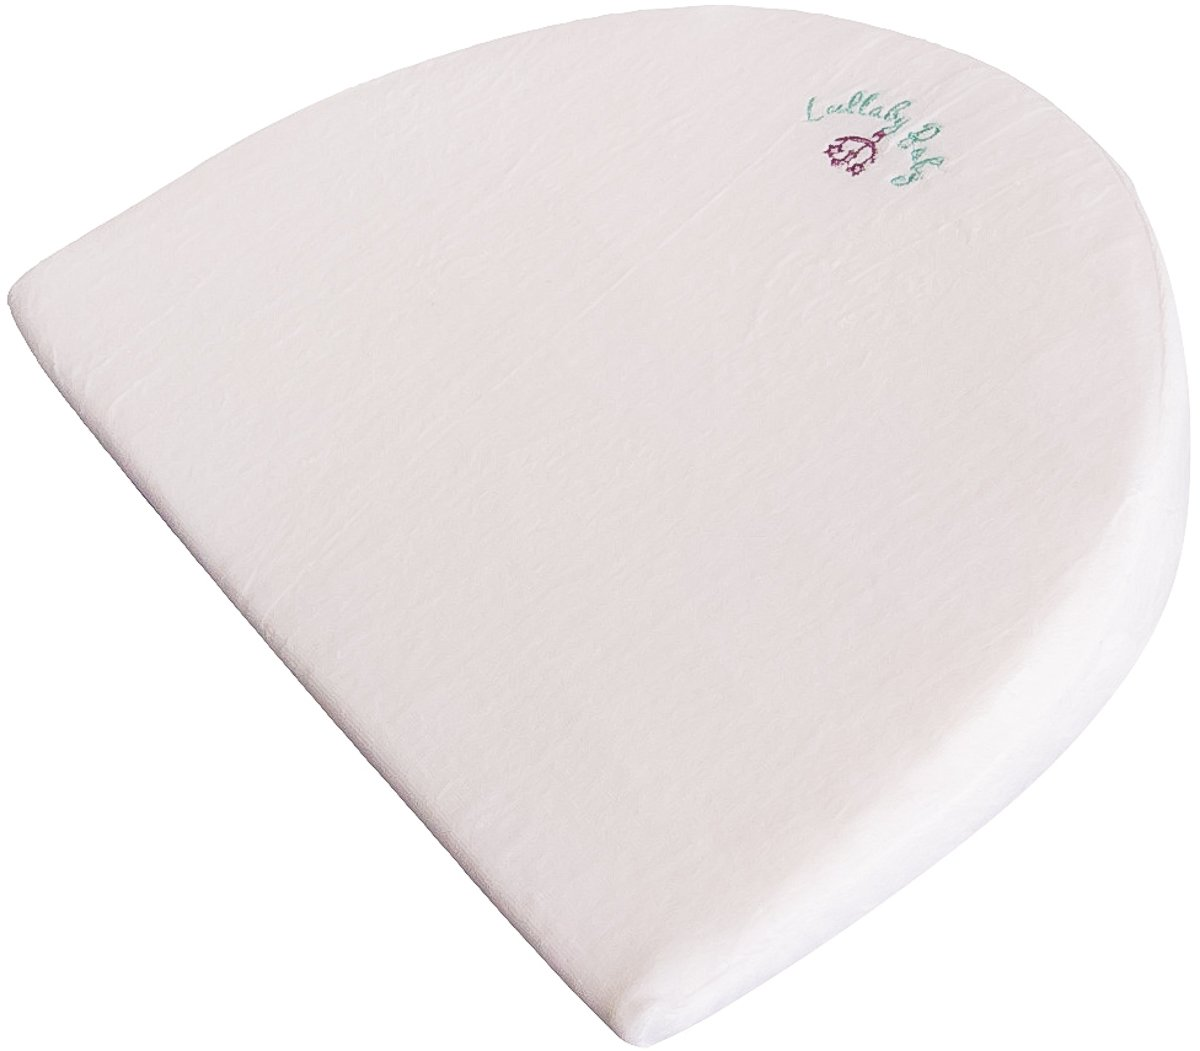 Lullaby Baby CPSC Lab Approved Large Wedge Pillow Infant Newborn Waterproof Large Size Memory Foam Foldable 12 Degree Incline Sleeper Acid Reflux For Bassinet